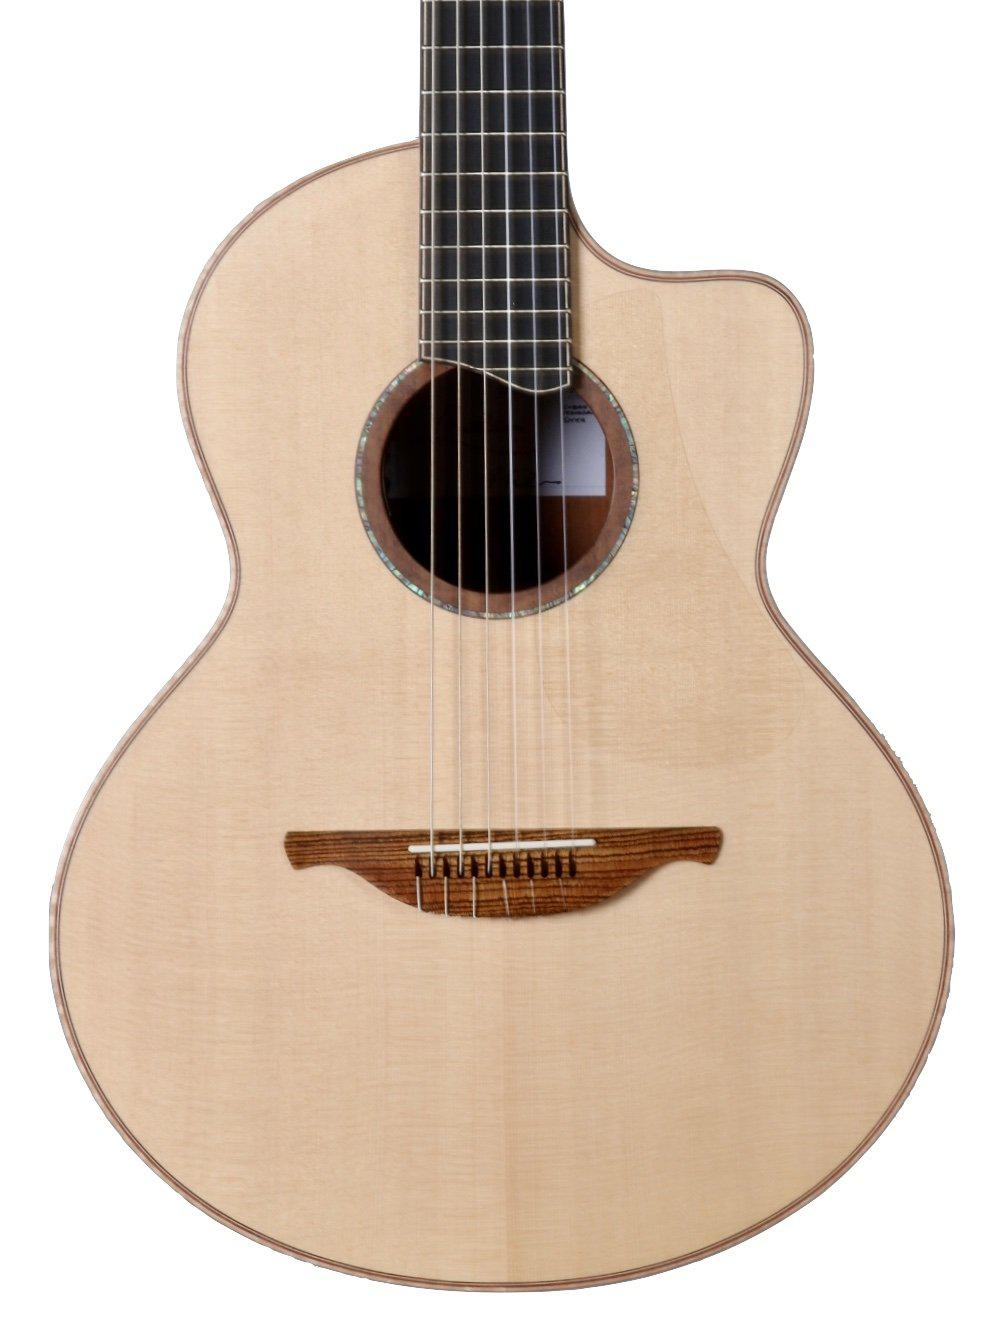 Lowden S50J Nylon Jazz Model  Sitka Spruce / Cuban Mahogany #23751 - Lowden Guitars - Heartbreaker Guitars